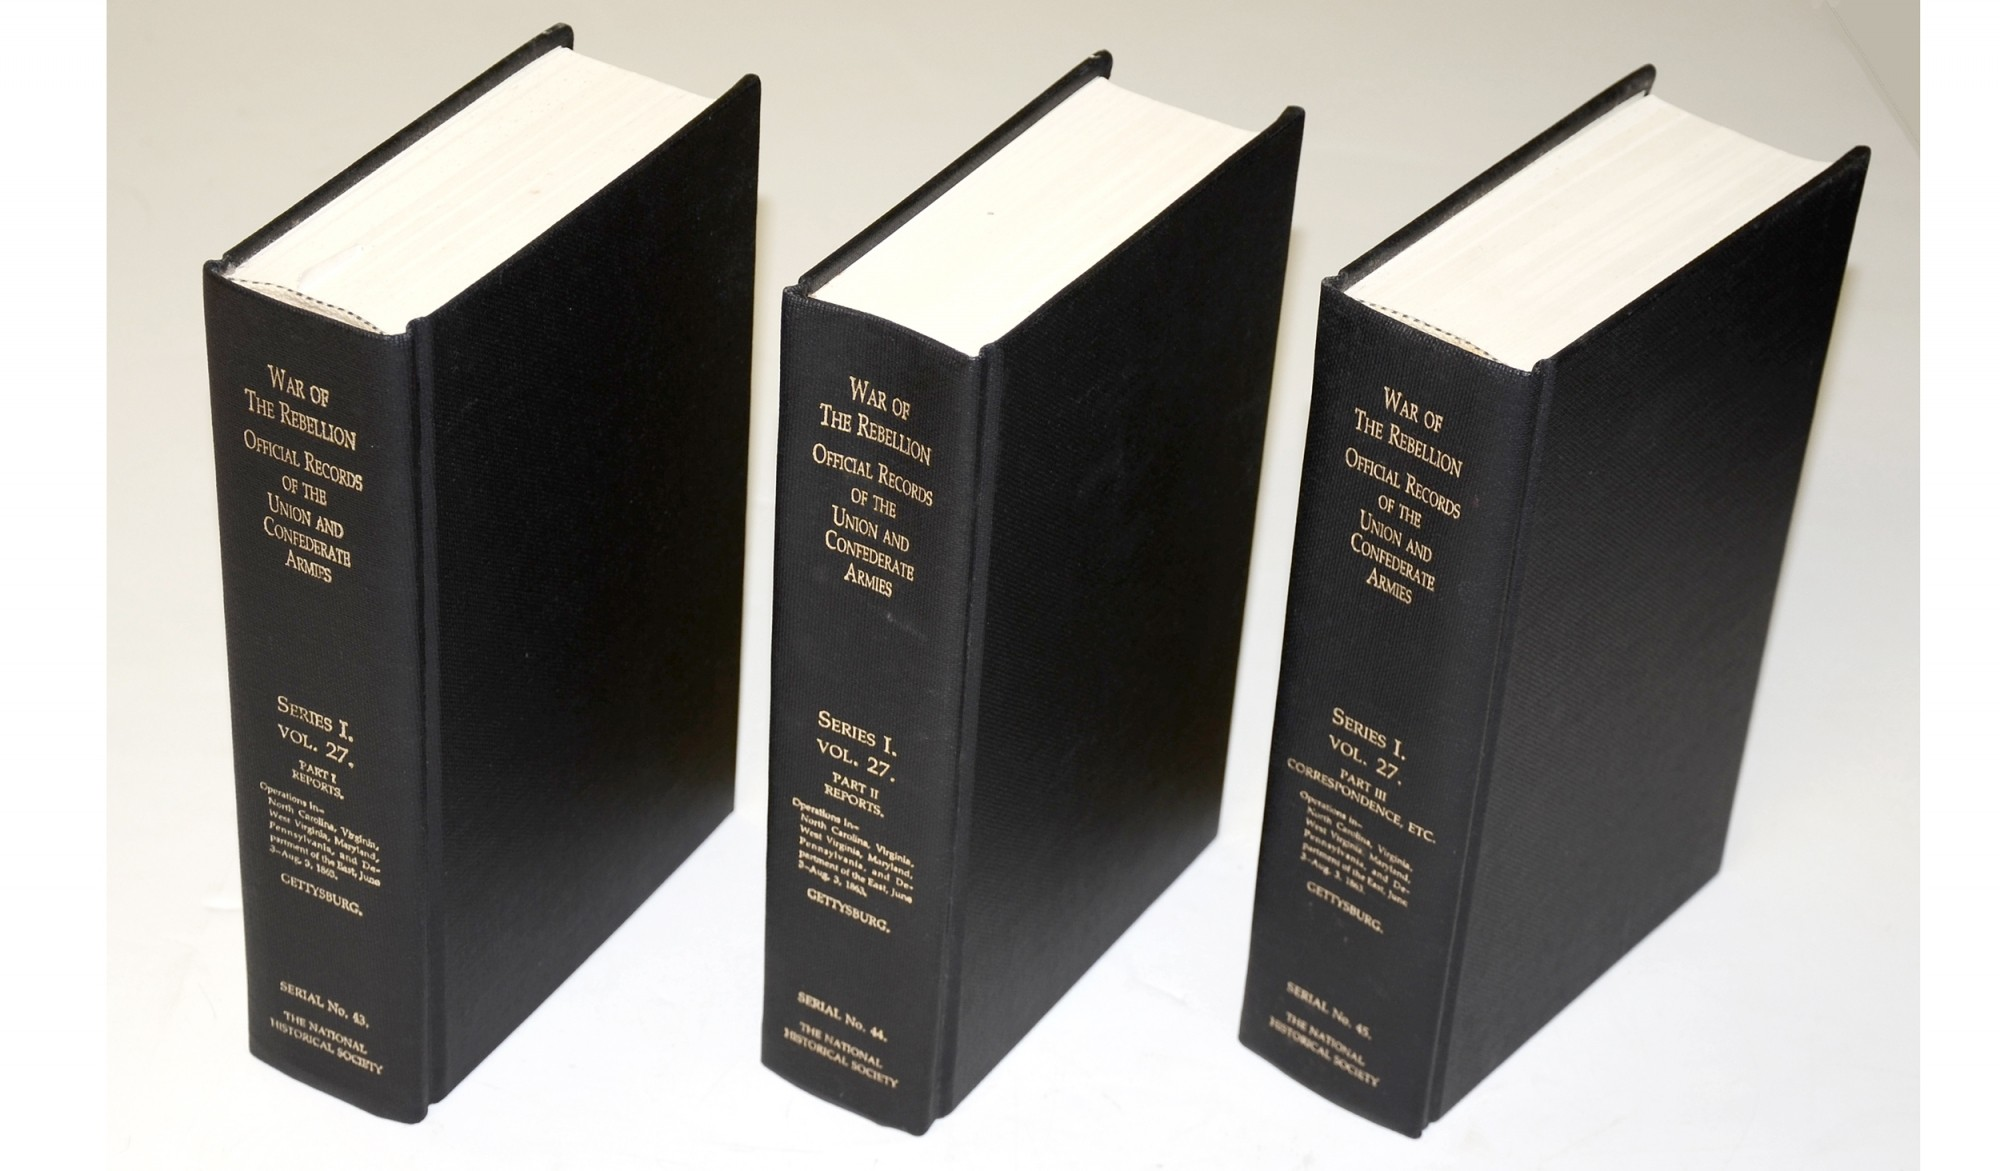 THREE VOLUME SET OF GETTYSBURG OFFICIAL RECORDS